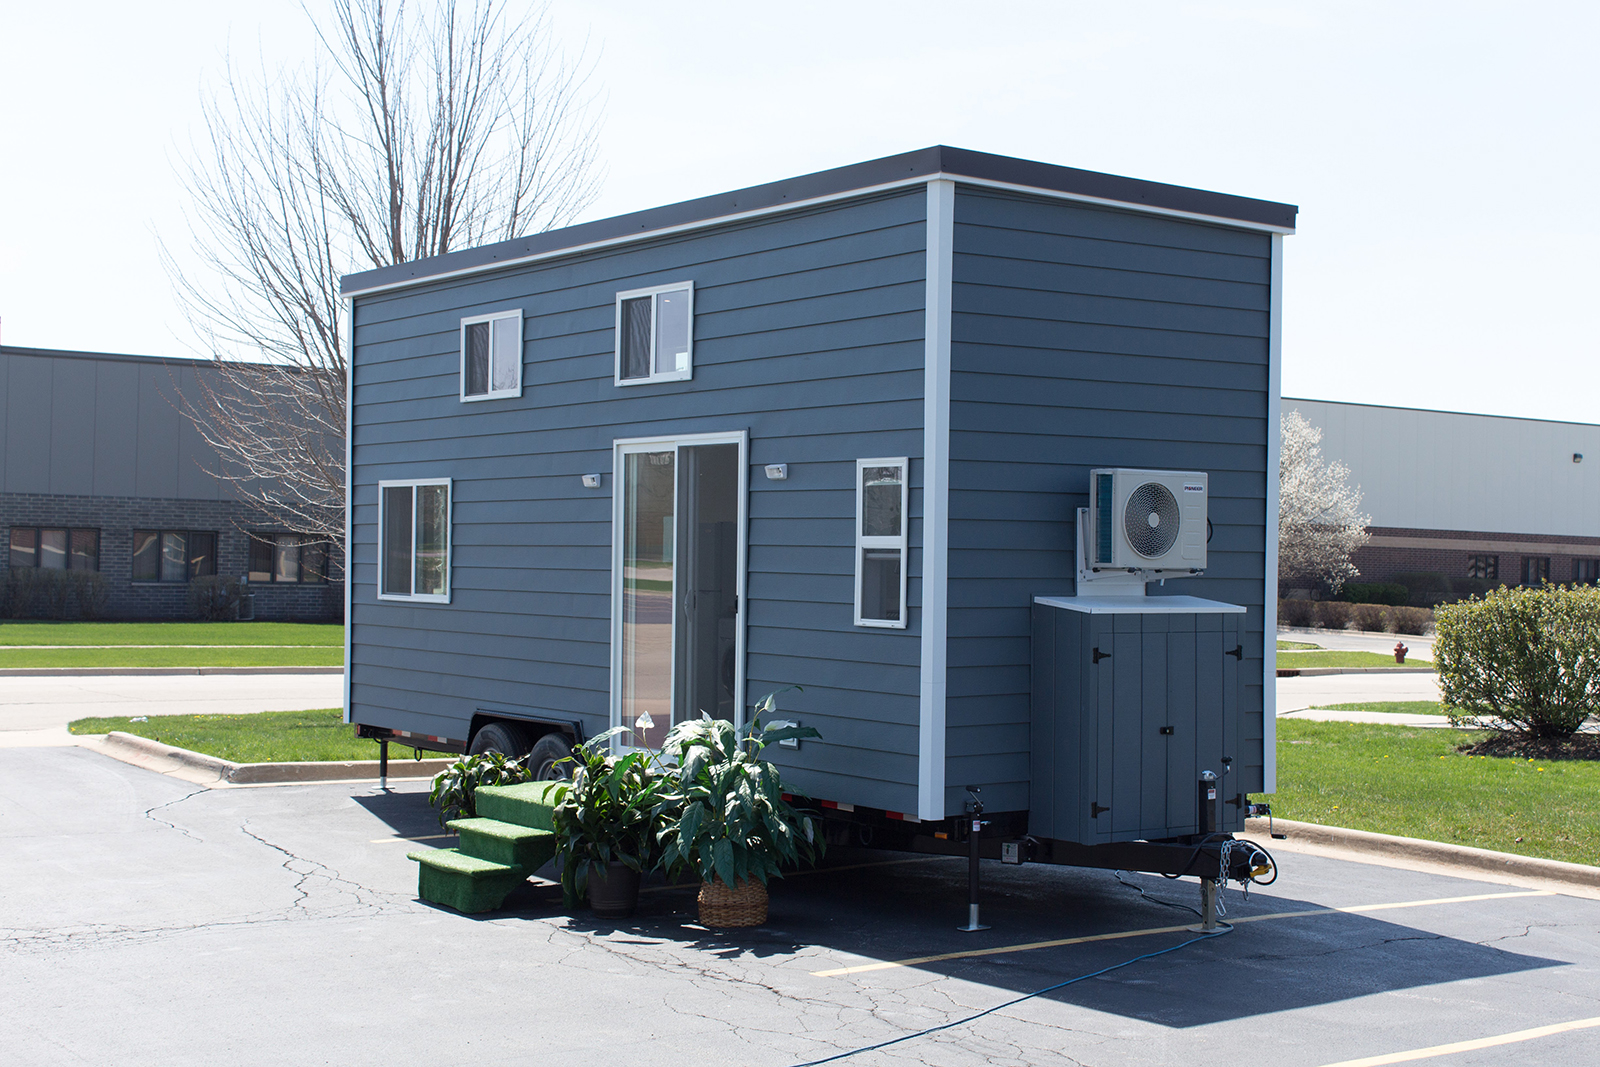 titan tiny homes coupons near me in south elgin 8coupons